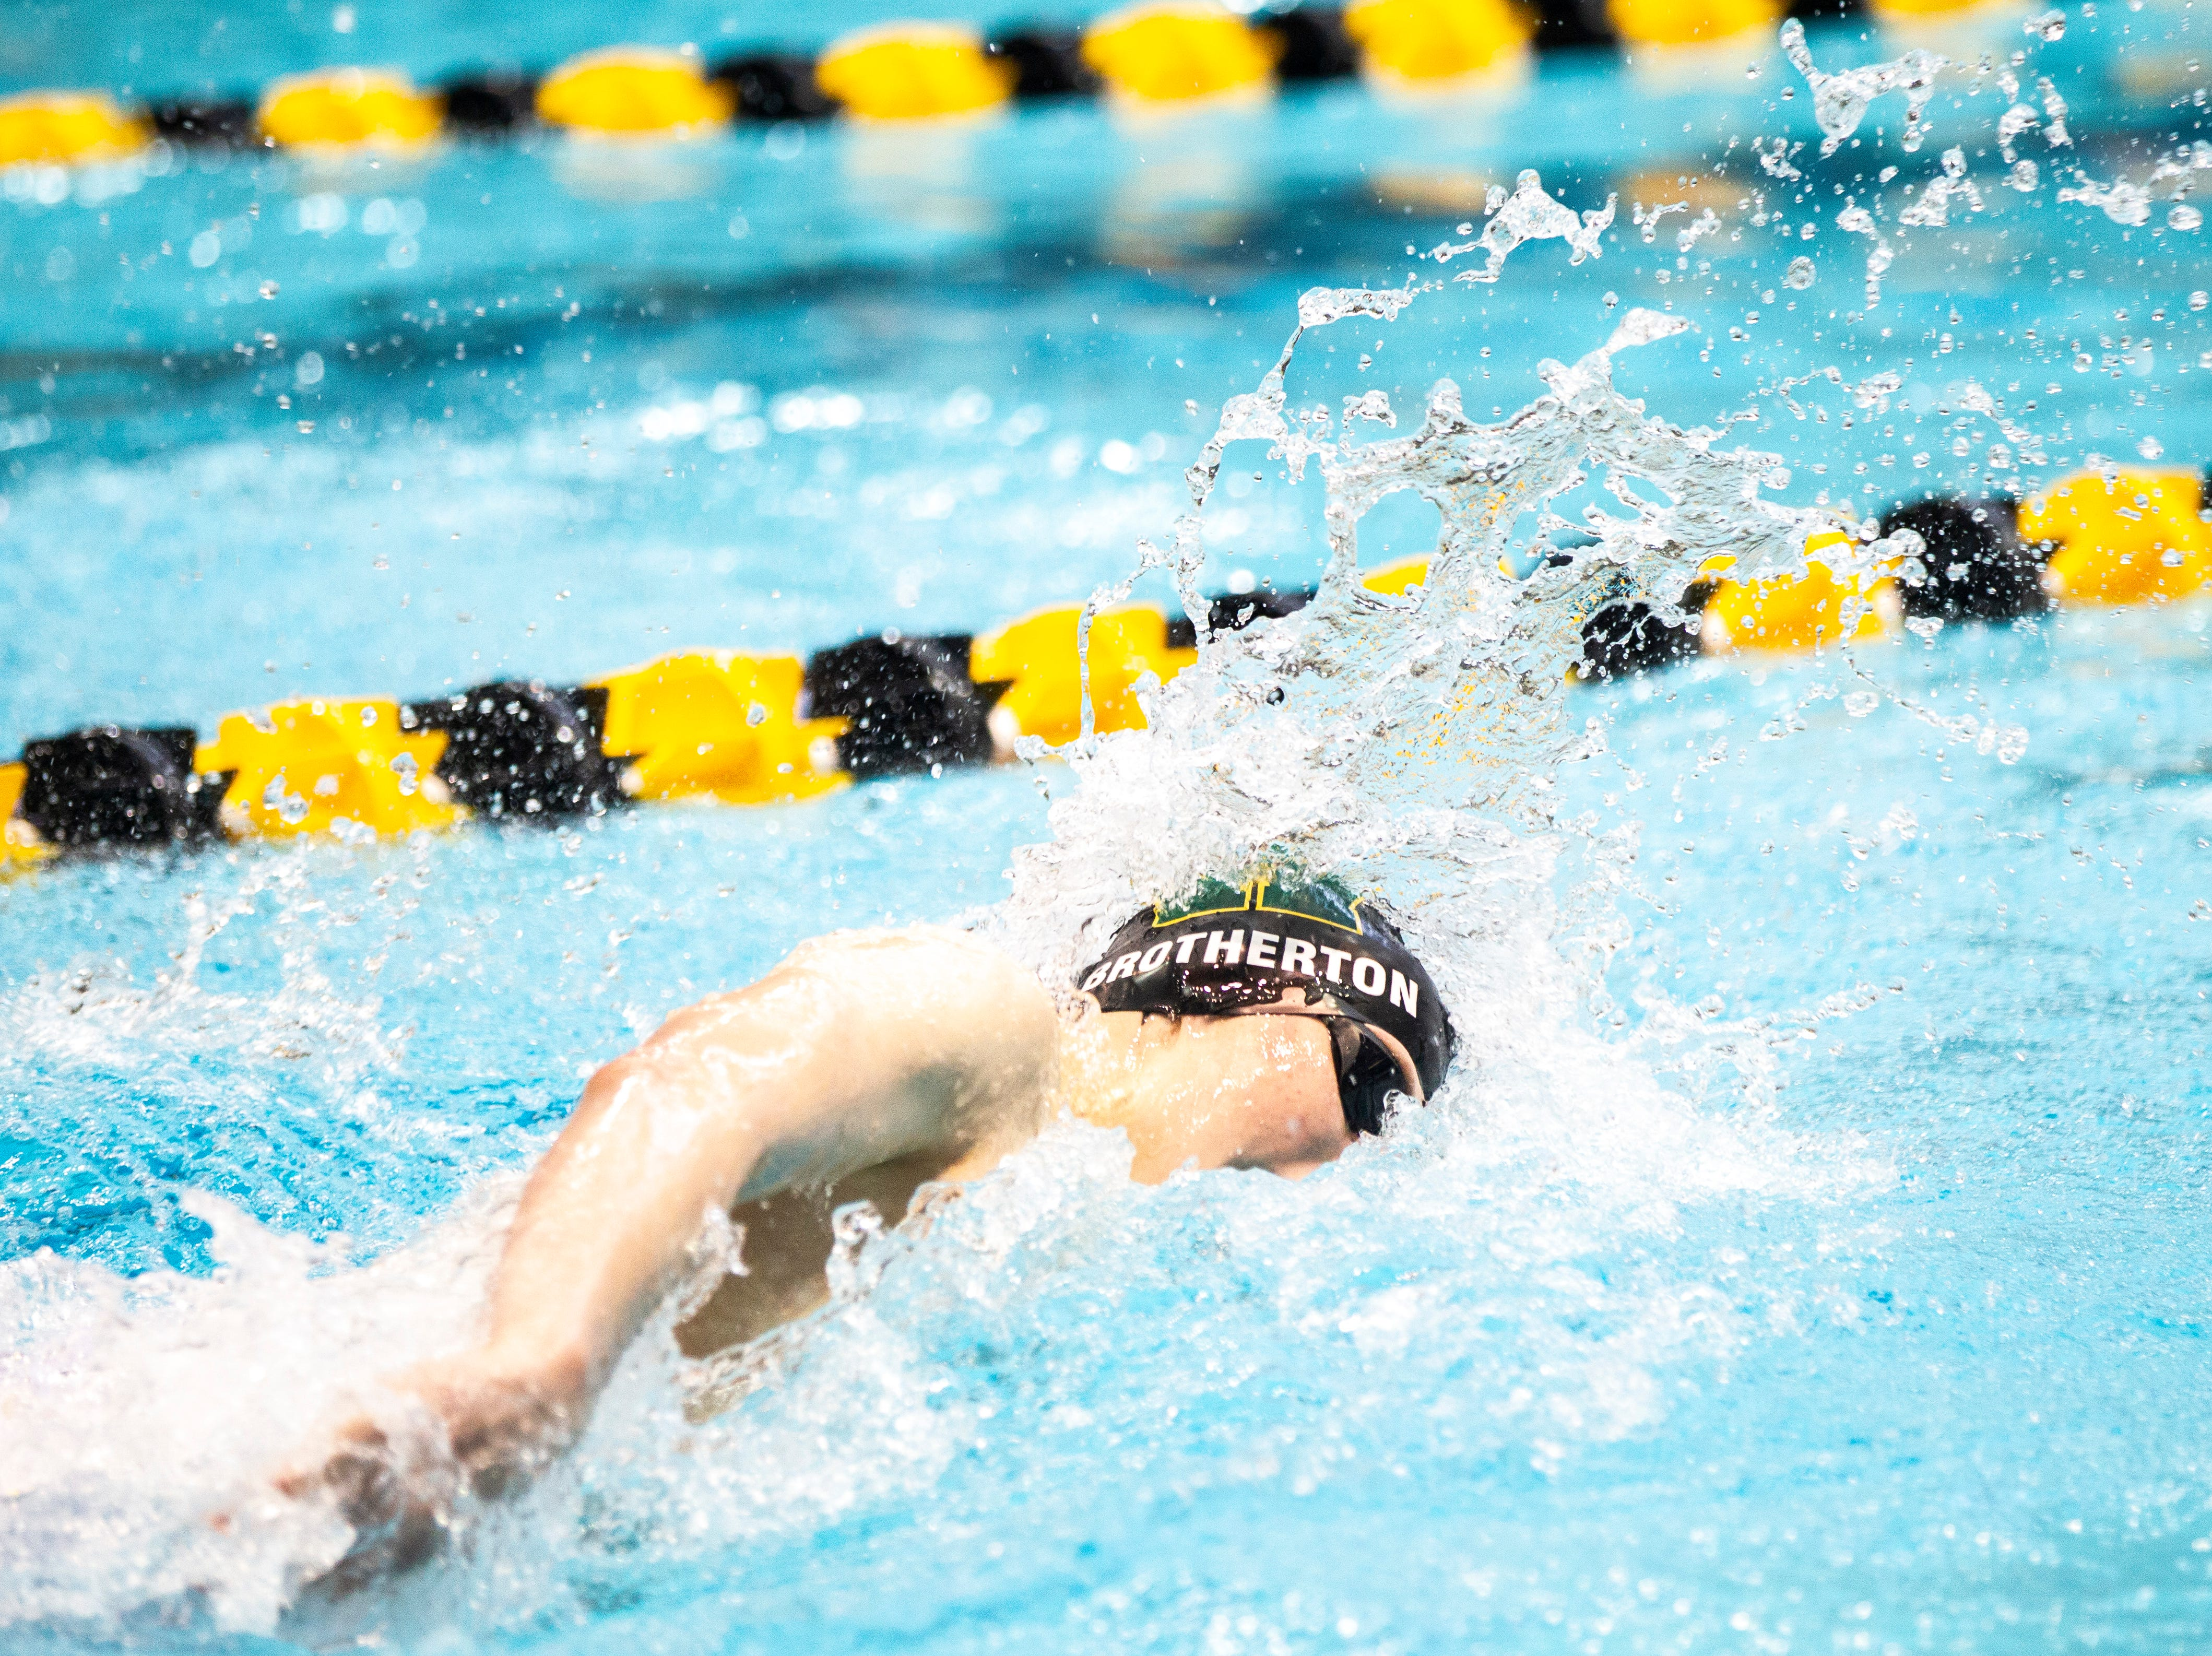 Iowa City West freshman Kirk Brotherton competes in the second heat of 400 yard freestyle relay during the Iowa boys' state swimming regional championship meet on Saturday, Feb. 9, 2019 at Campus Recreation and Wellness Center on the University of Iowa campus in Iowa City, Iowa. West High finished 14th overall, with a time of 3:18.44.